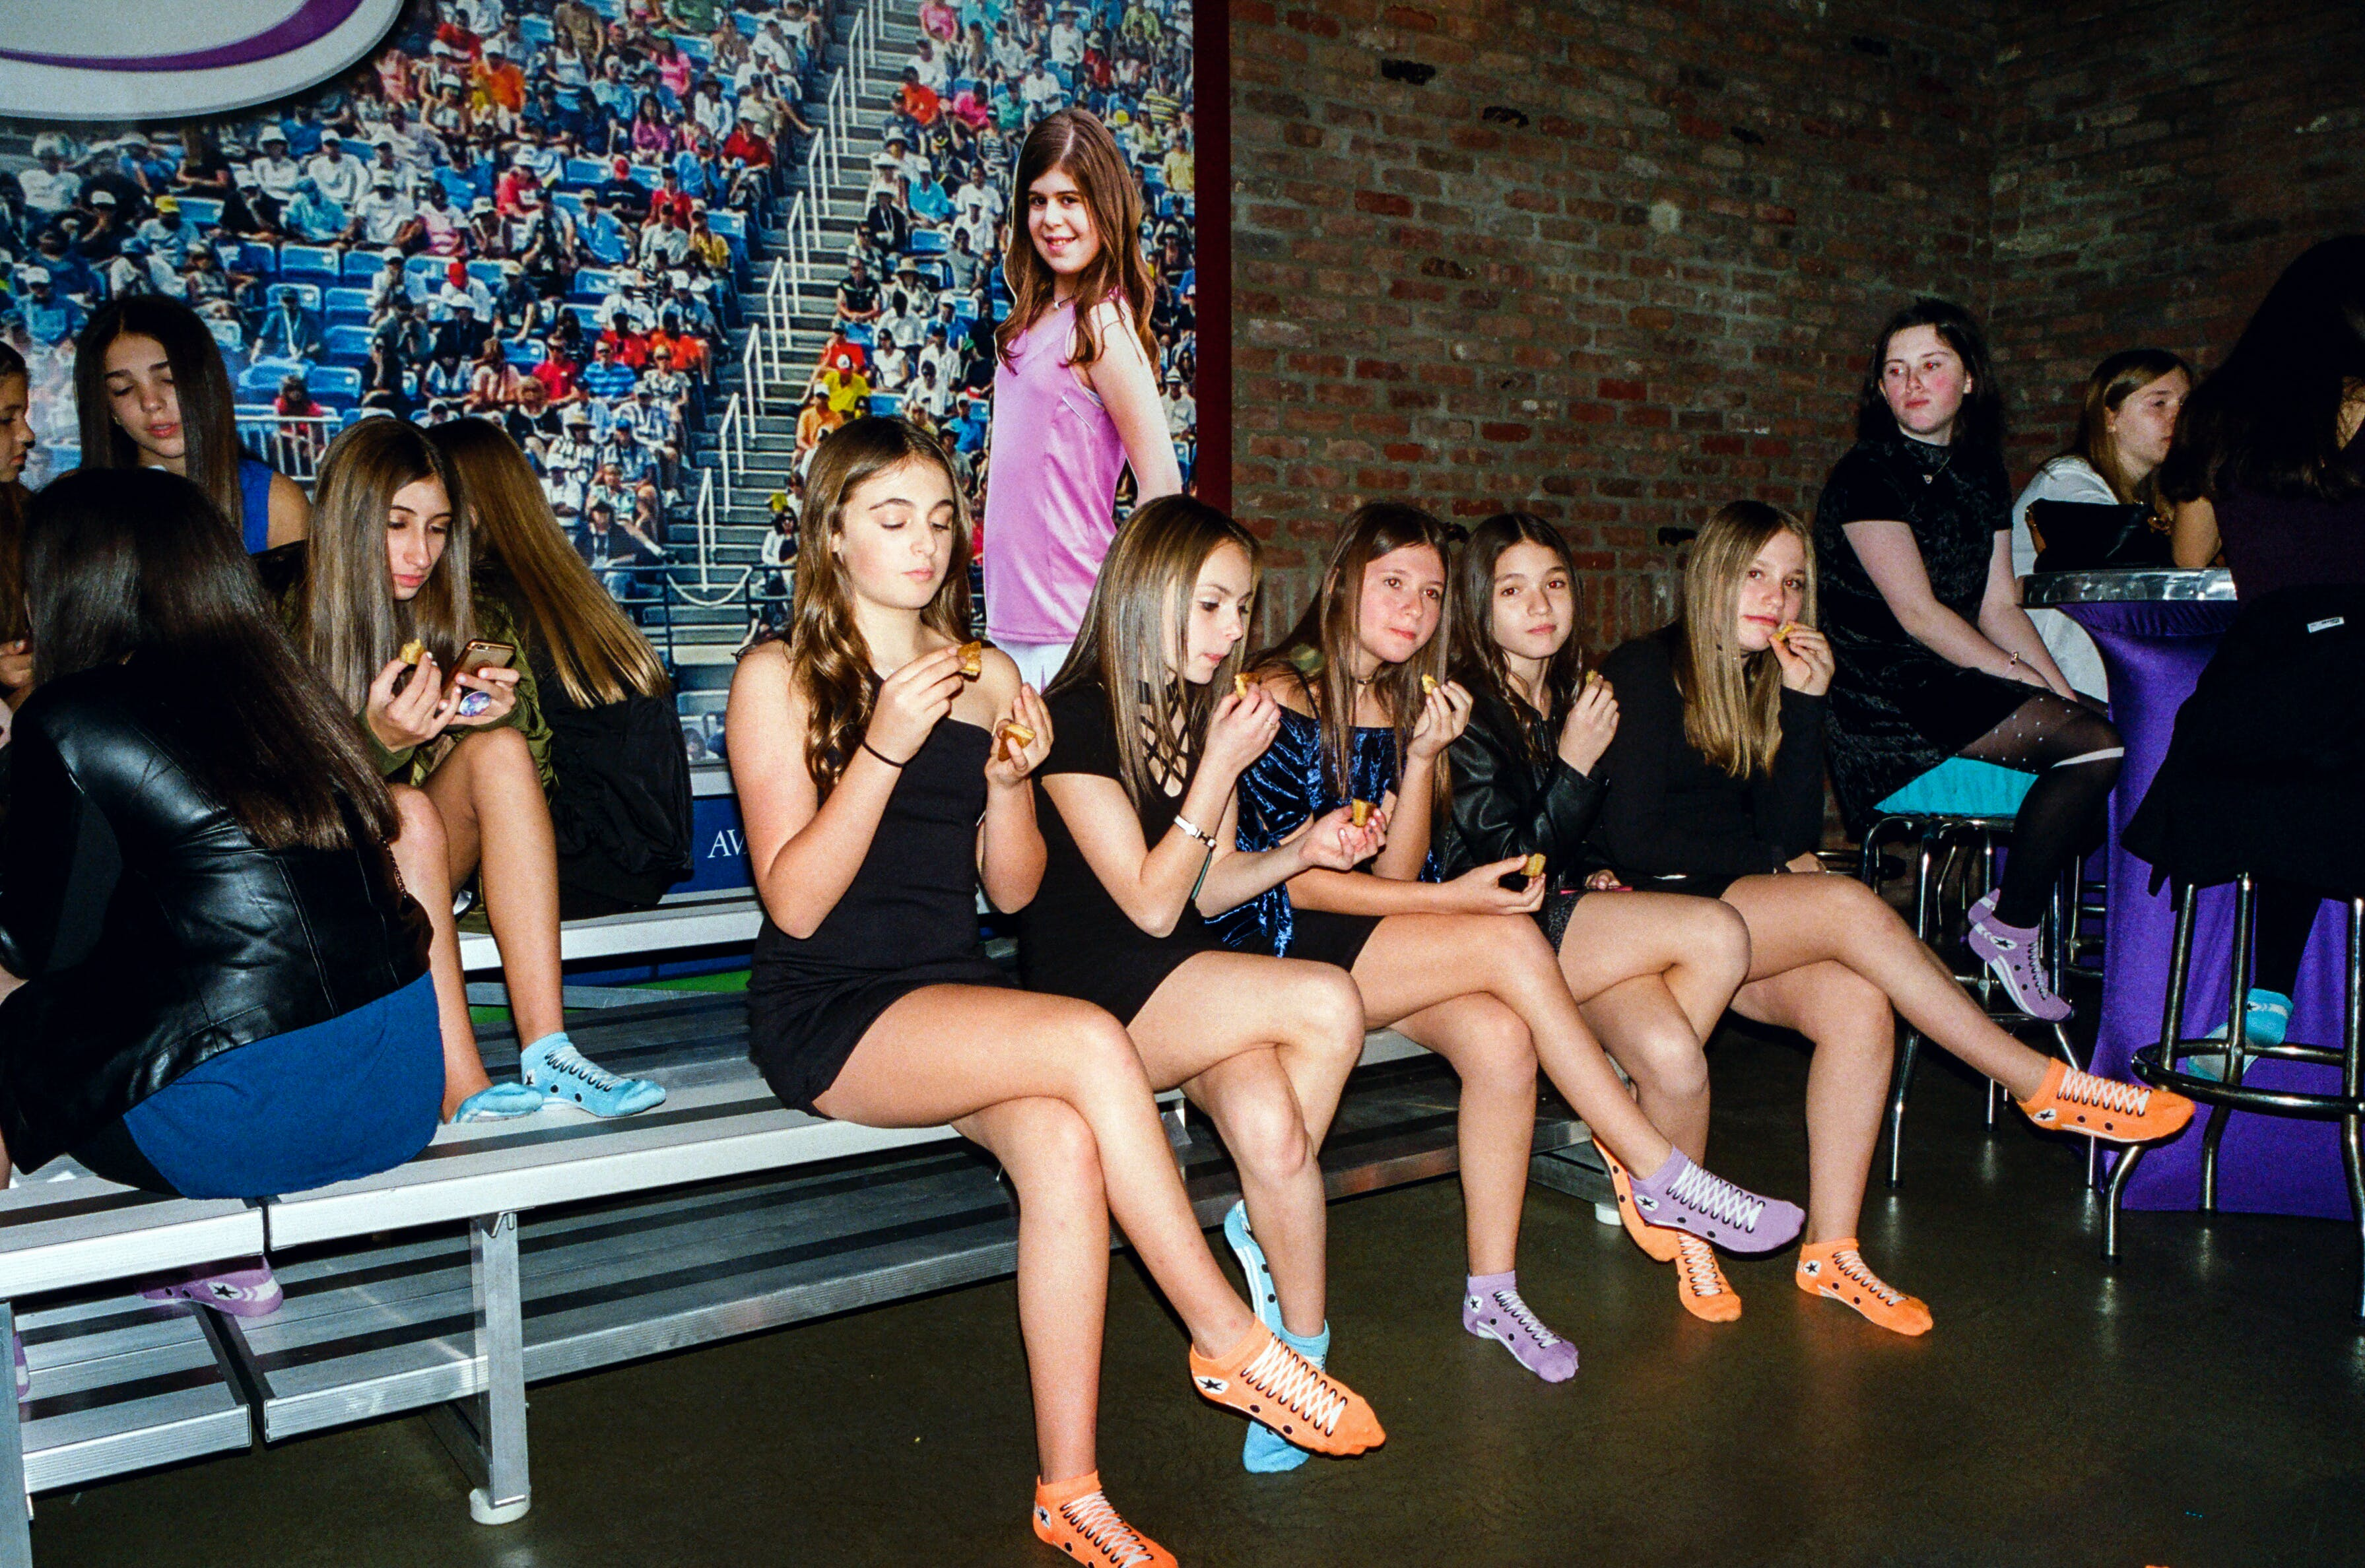 A braid of girls takes a breather on the bleachers.